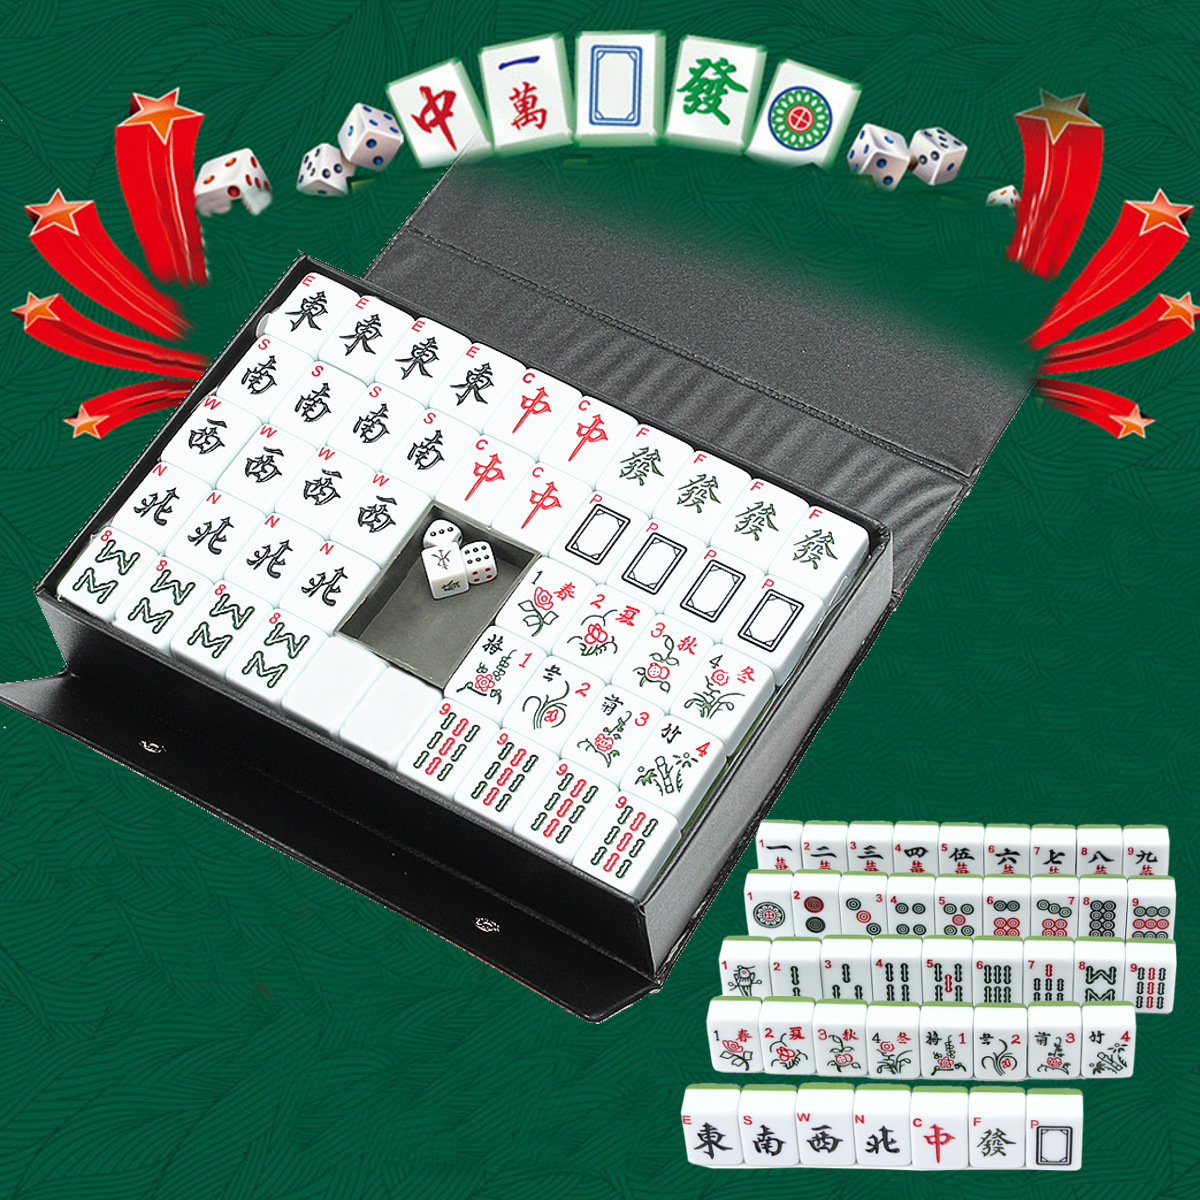 144 Tiles Portable Chinese MahJong Rare Game Set Retro Mah Jong + Custom Fit Box Entertainment Fun Family Board Games